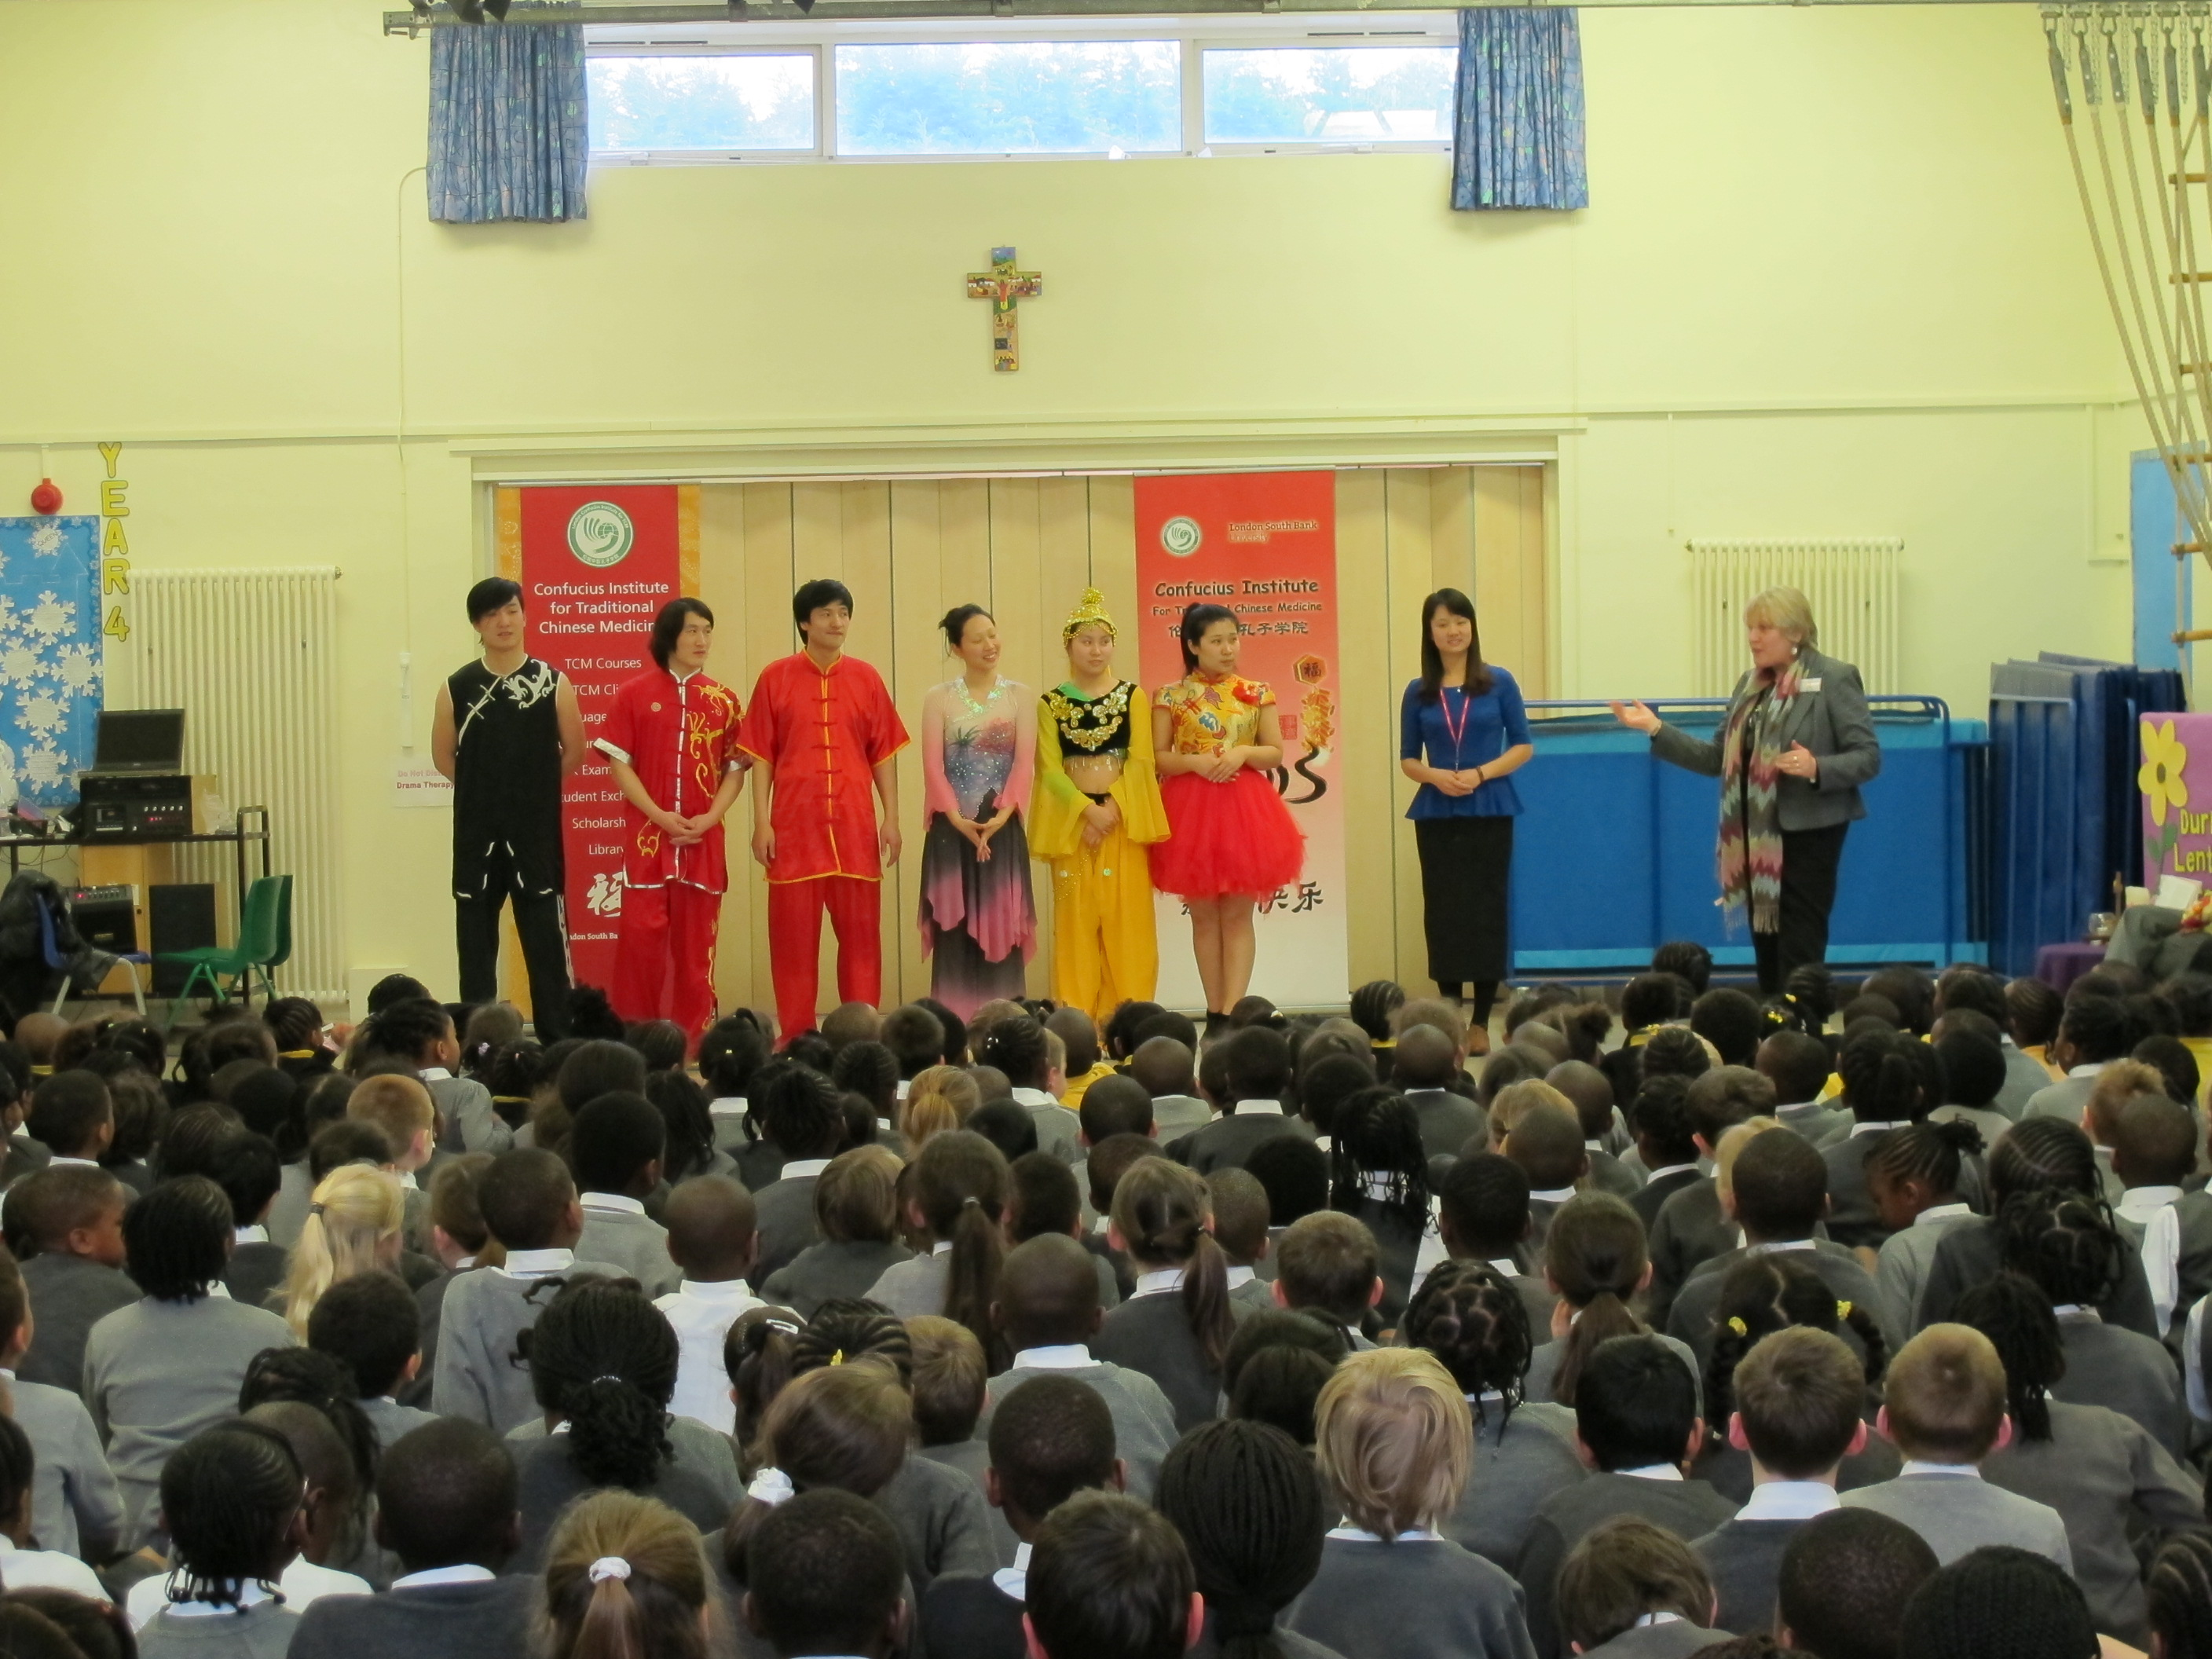 Mrs Ruiz, Head teacher of St Chad's Primary School expressing their thanks to the Performance Troupe